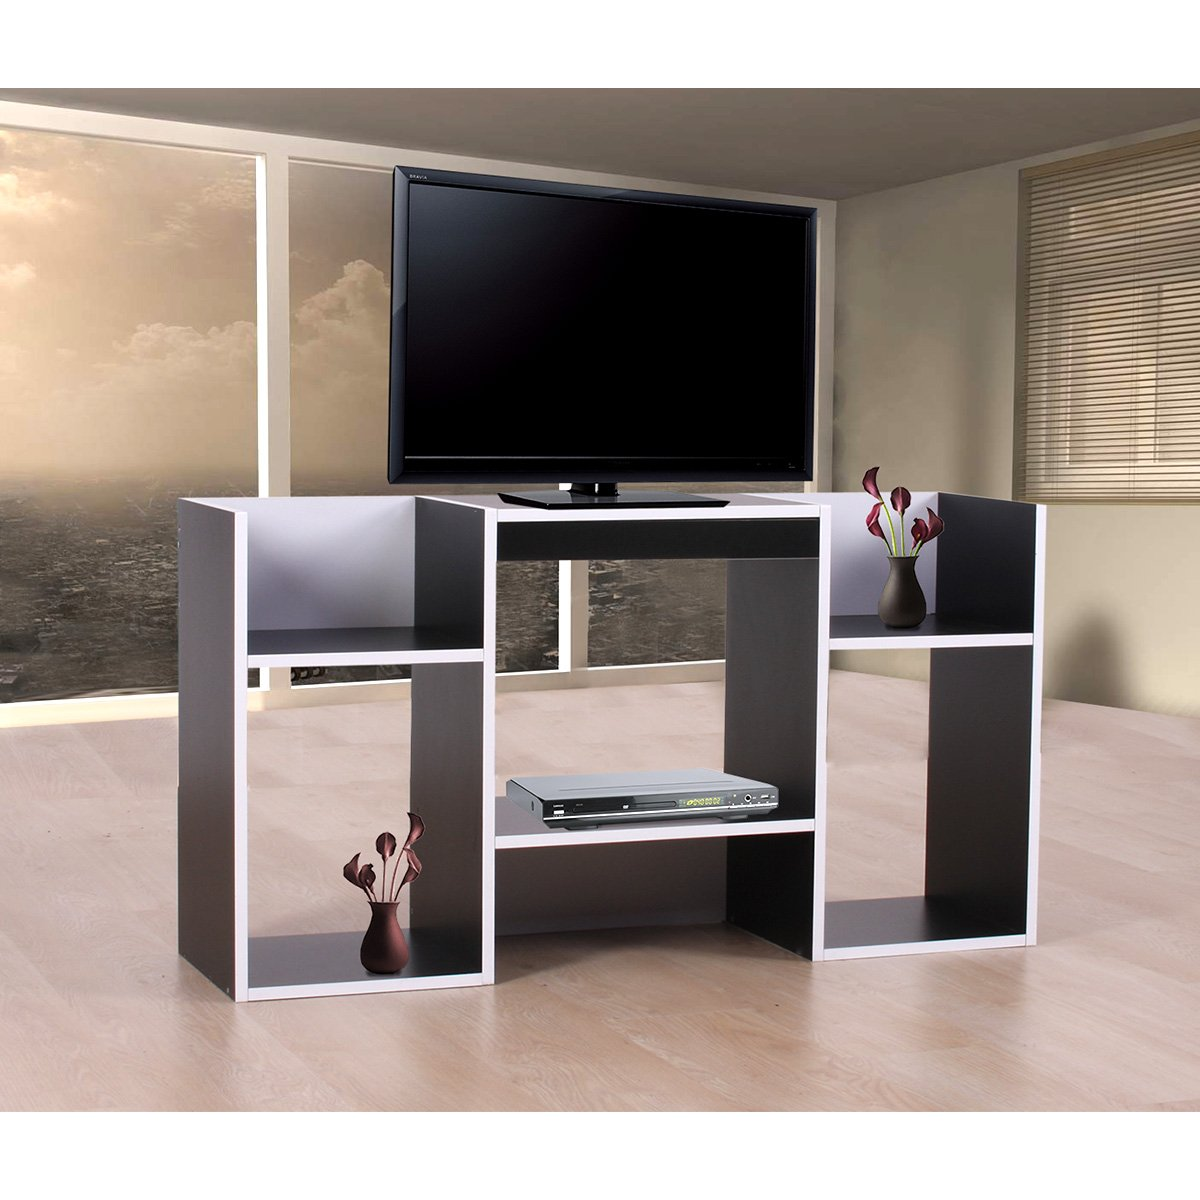 Muebles modernos para tv con cu l te quedas homy for Muebles para tv modernos fotos